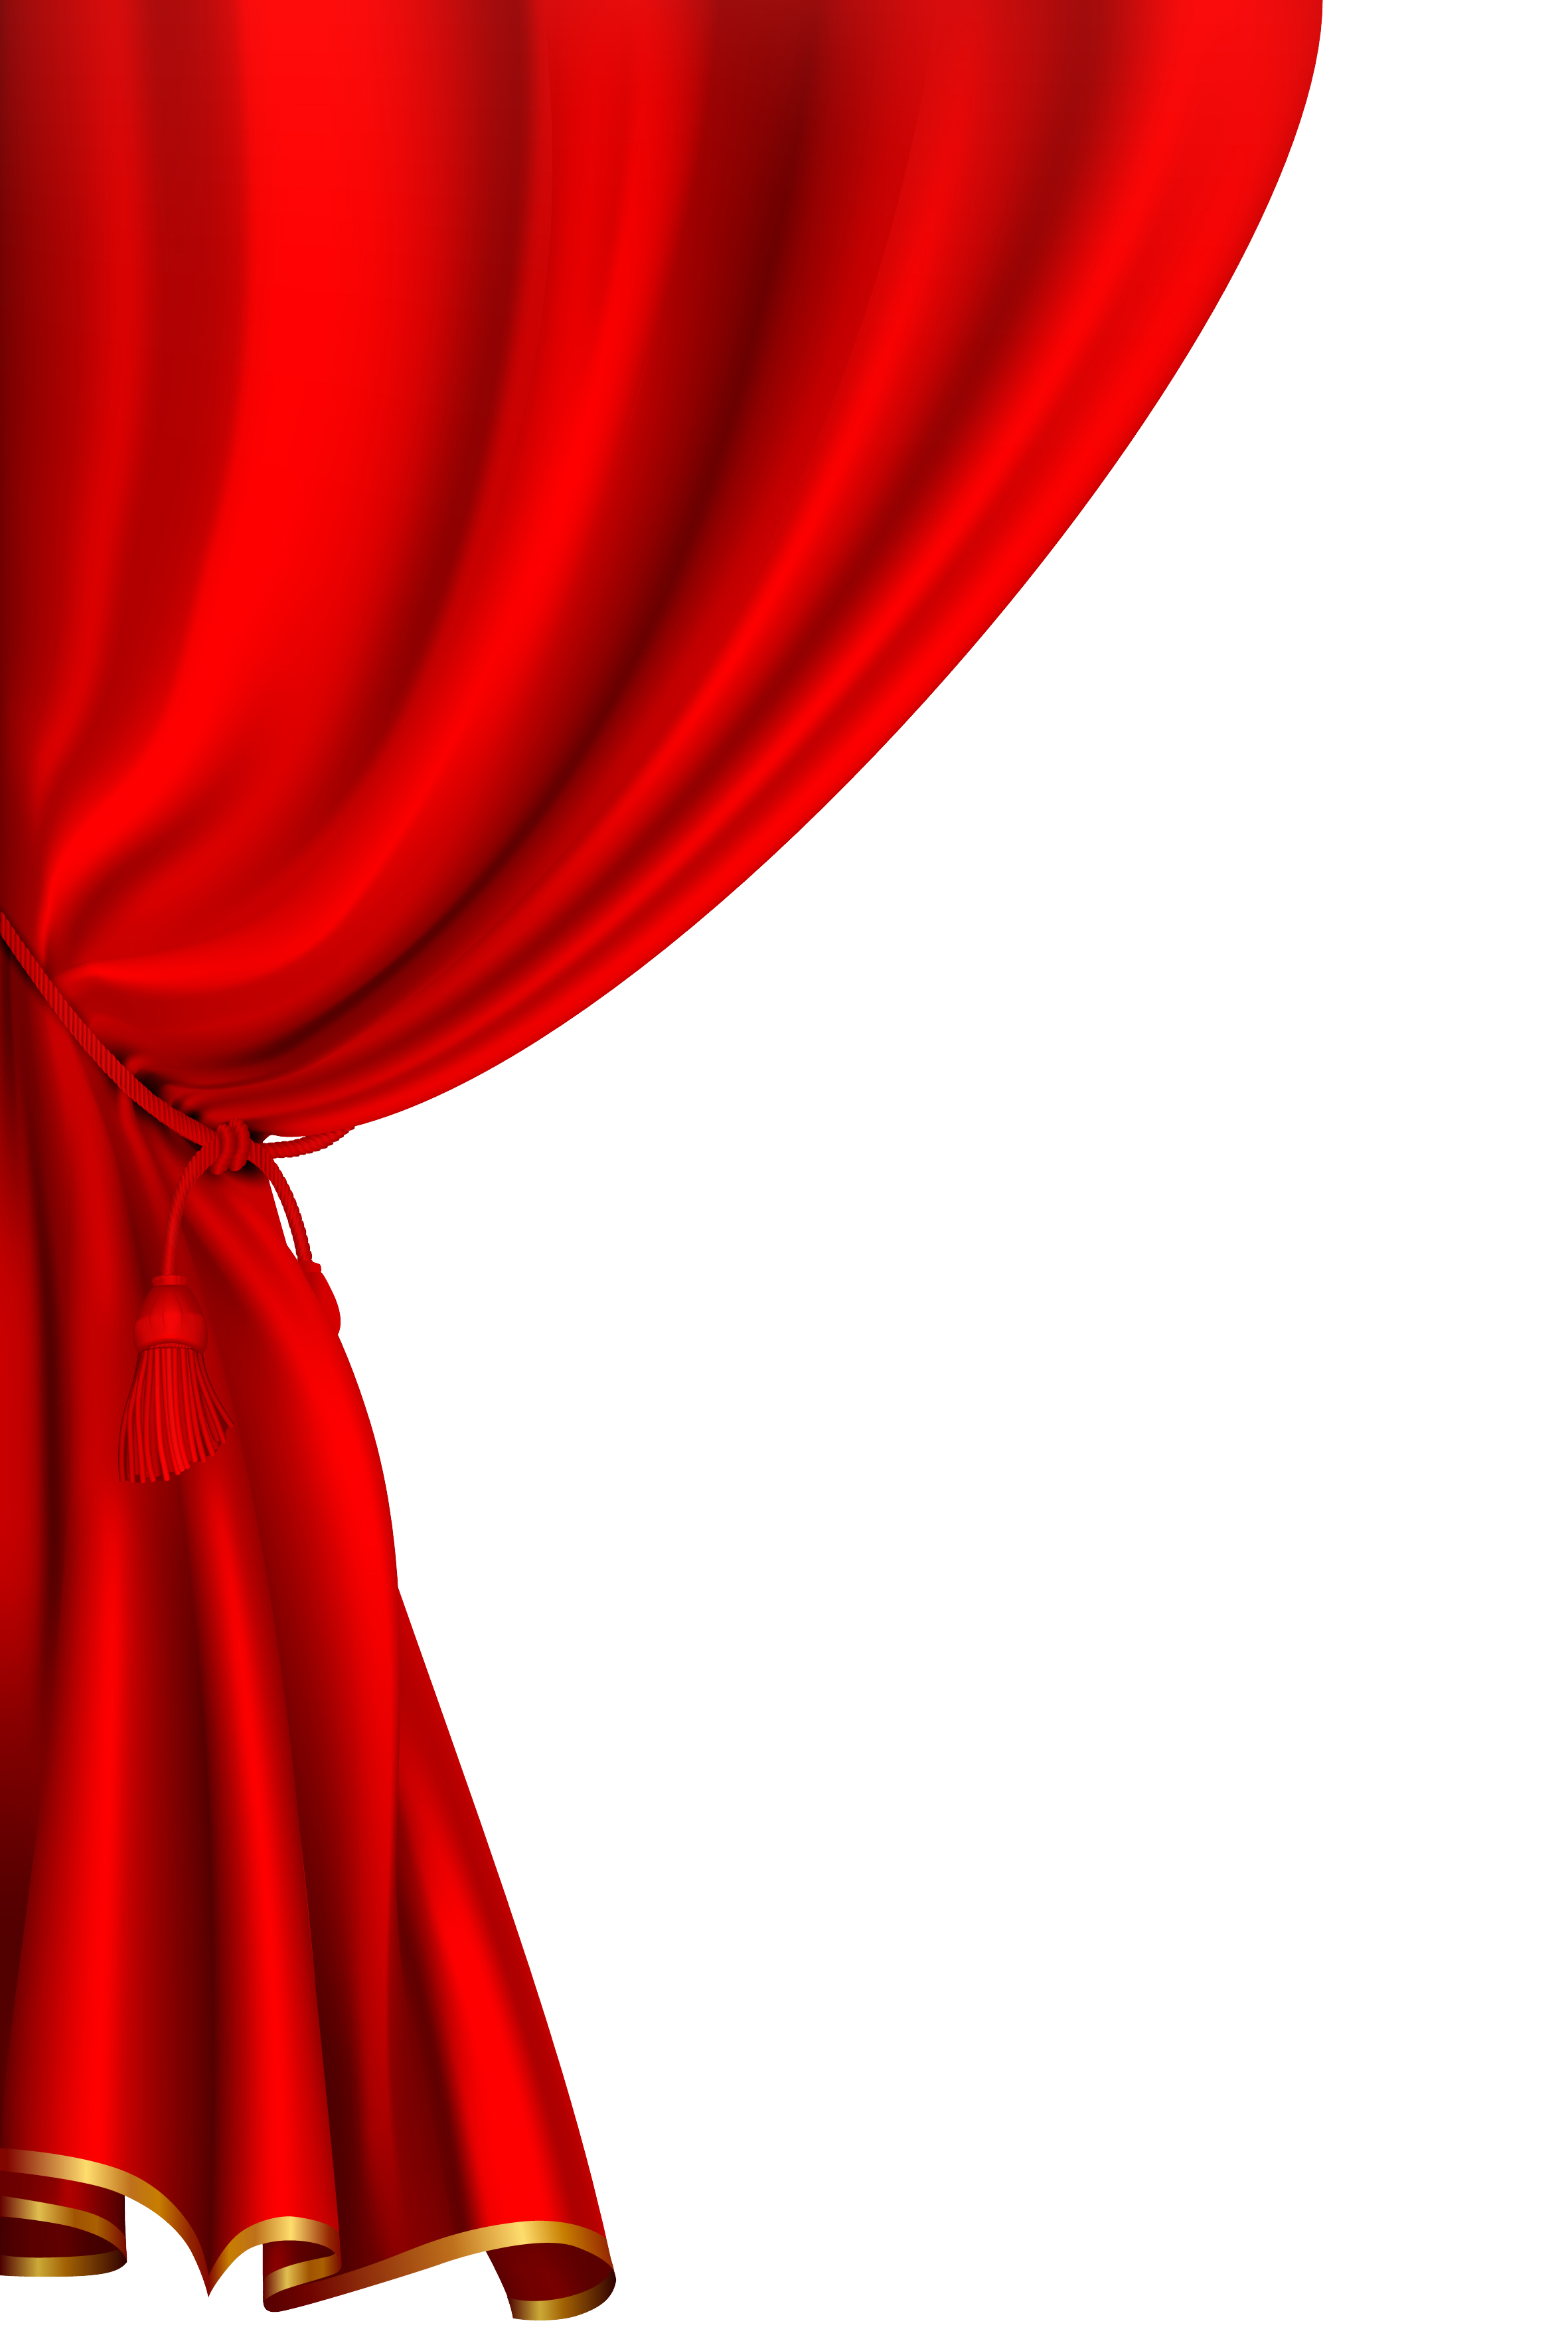 High Resolution Red Curtains Background